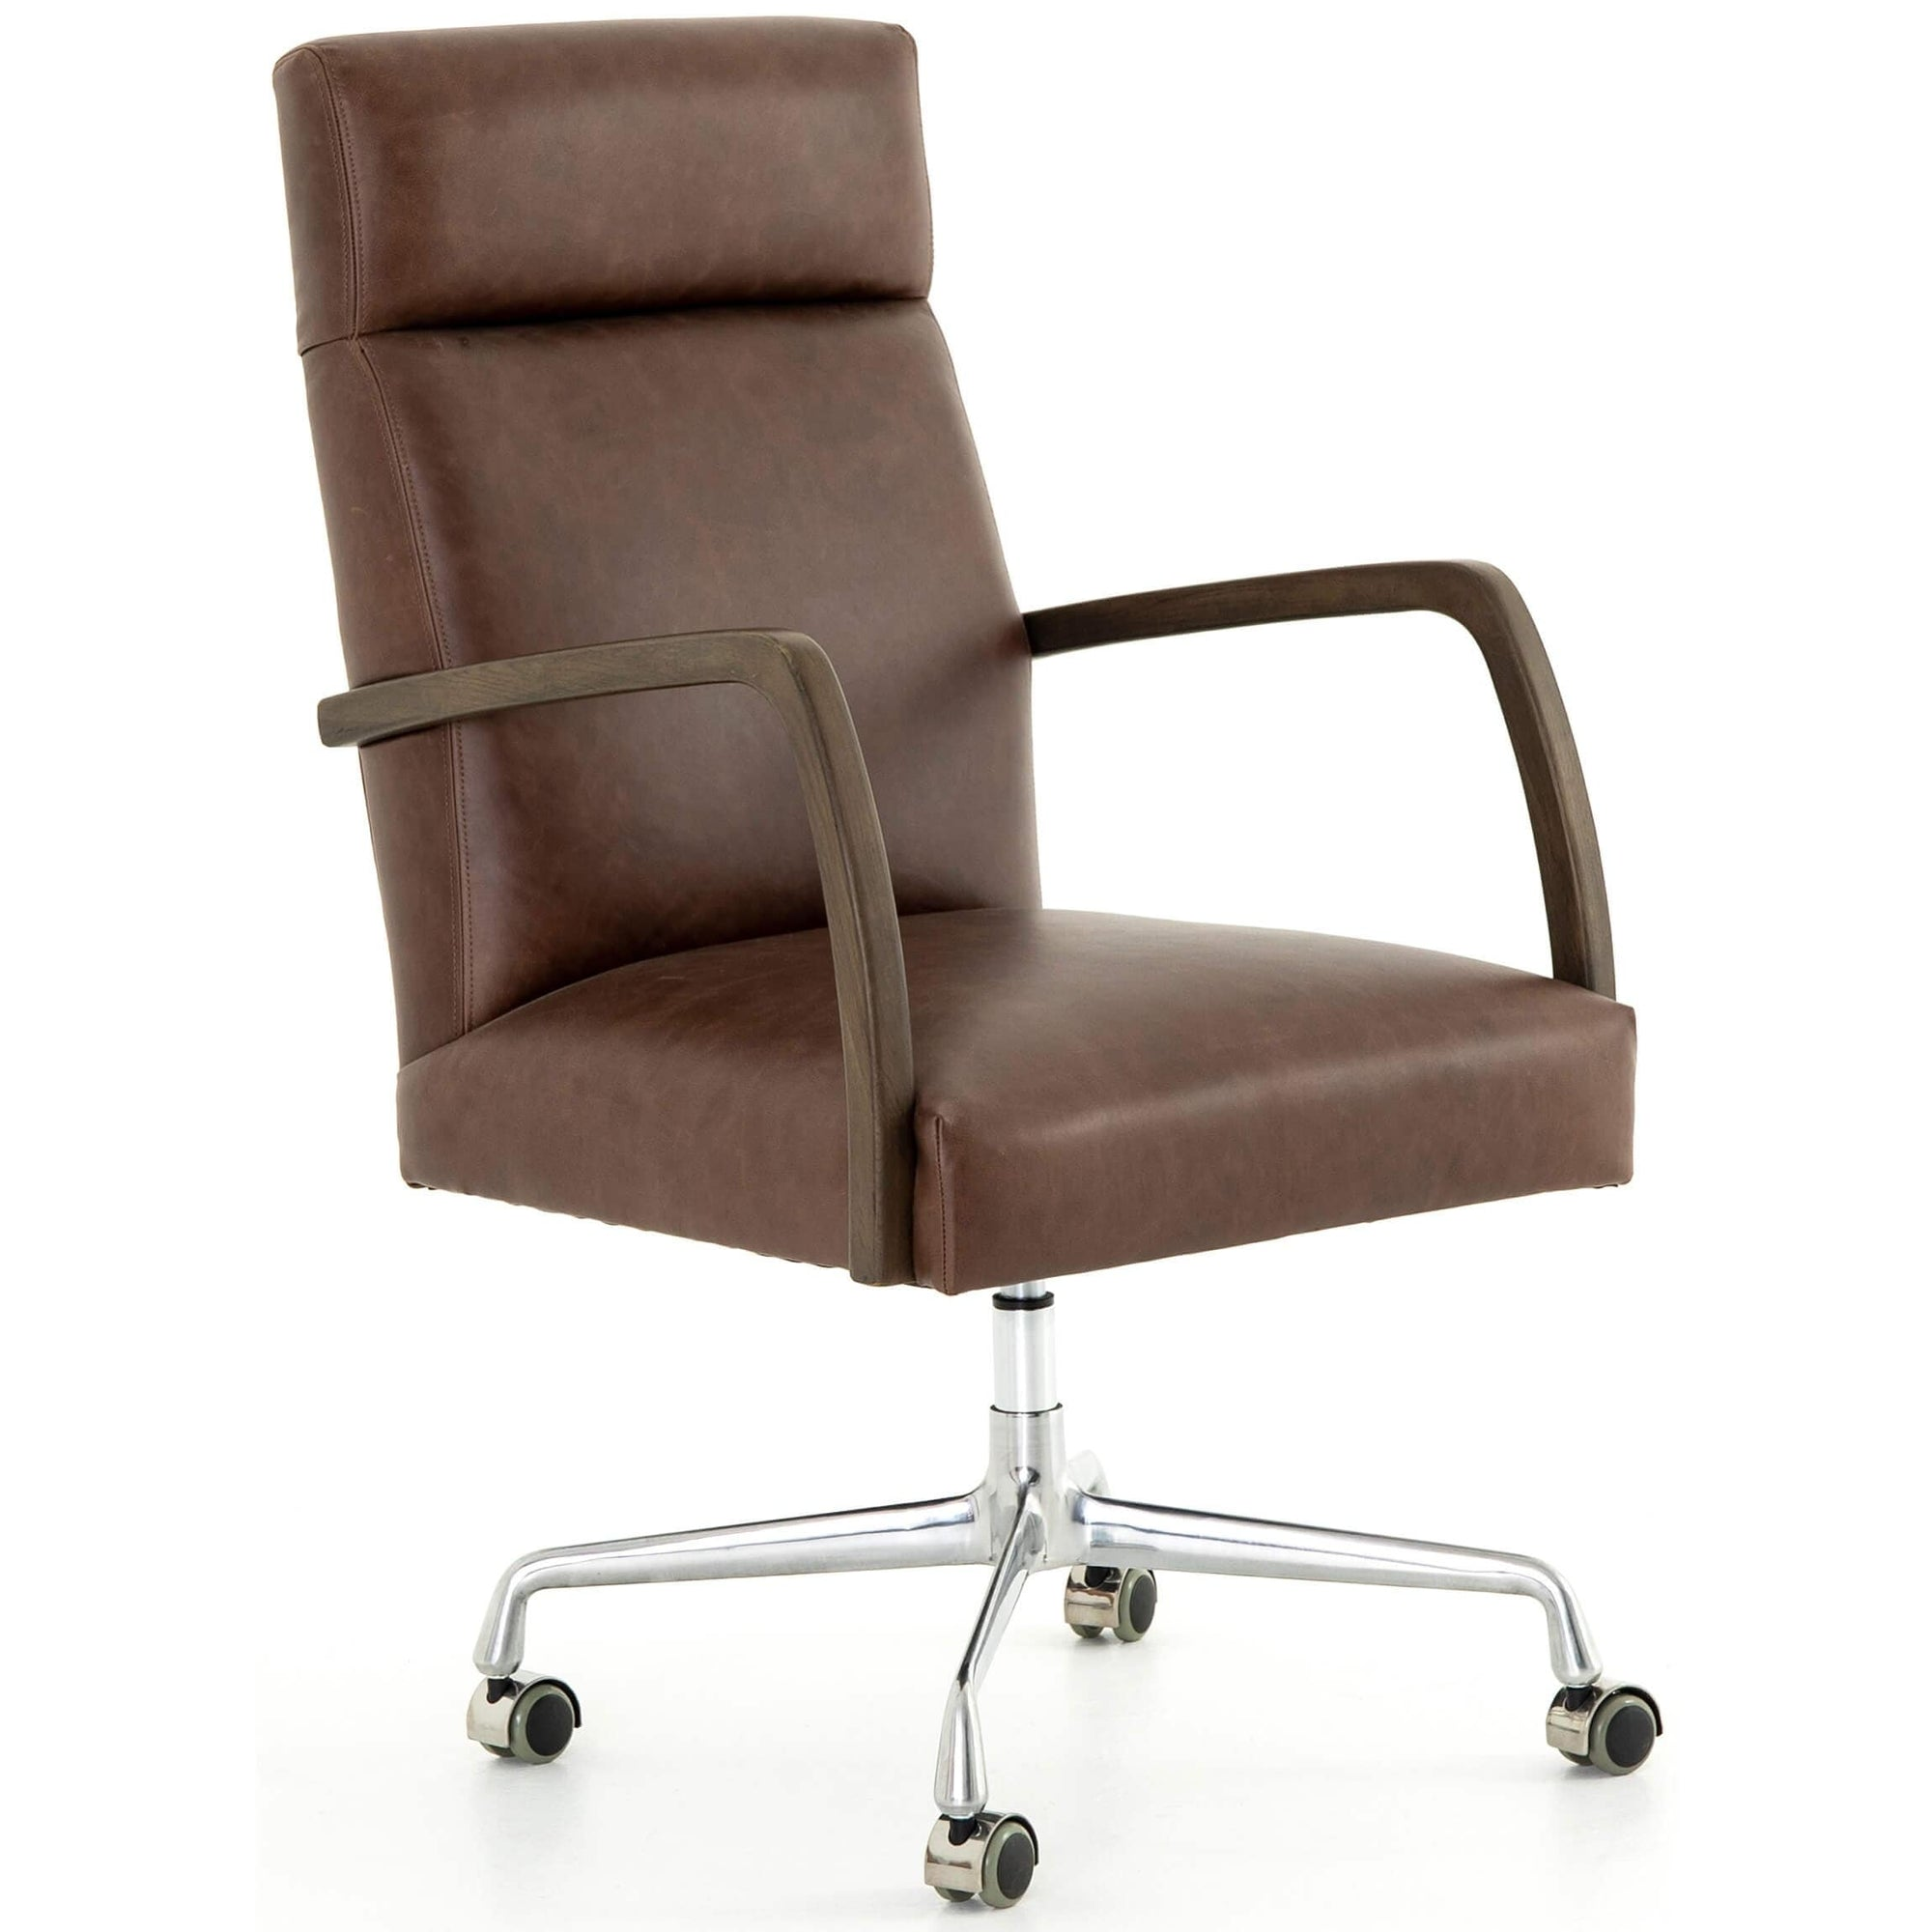 Bryson Leather Desk Chair Havana Brown High Fashion Home